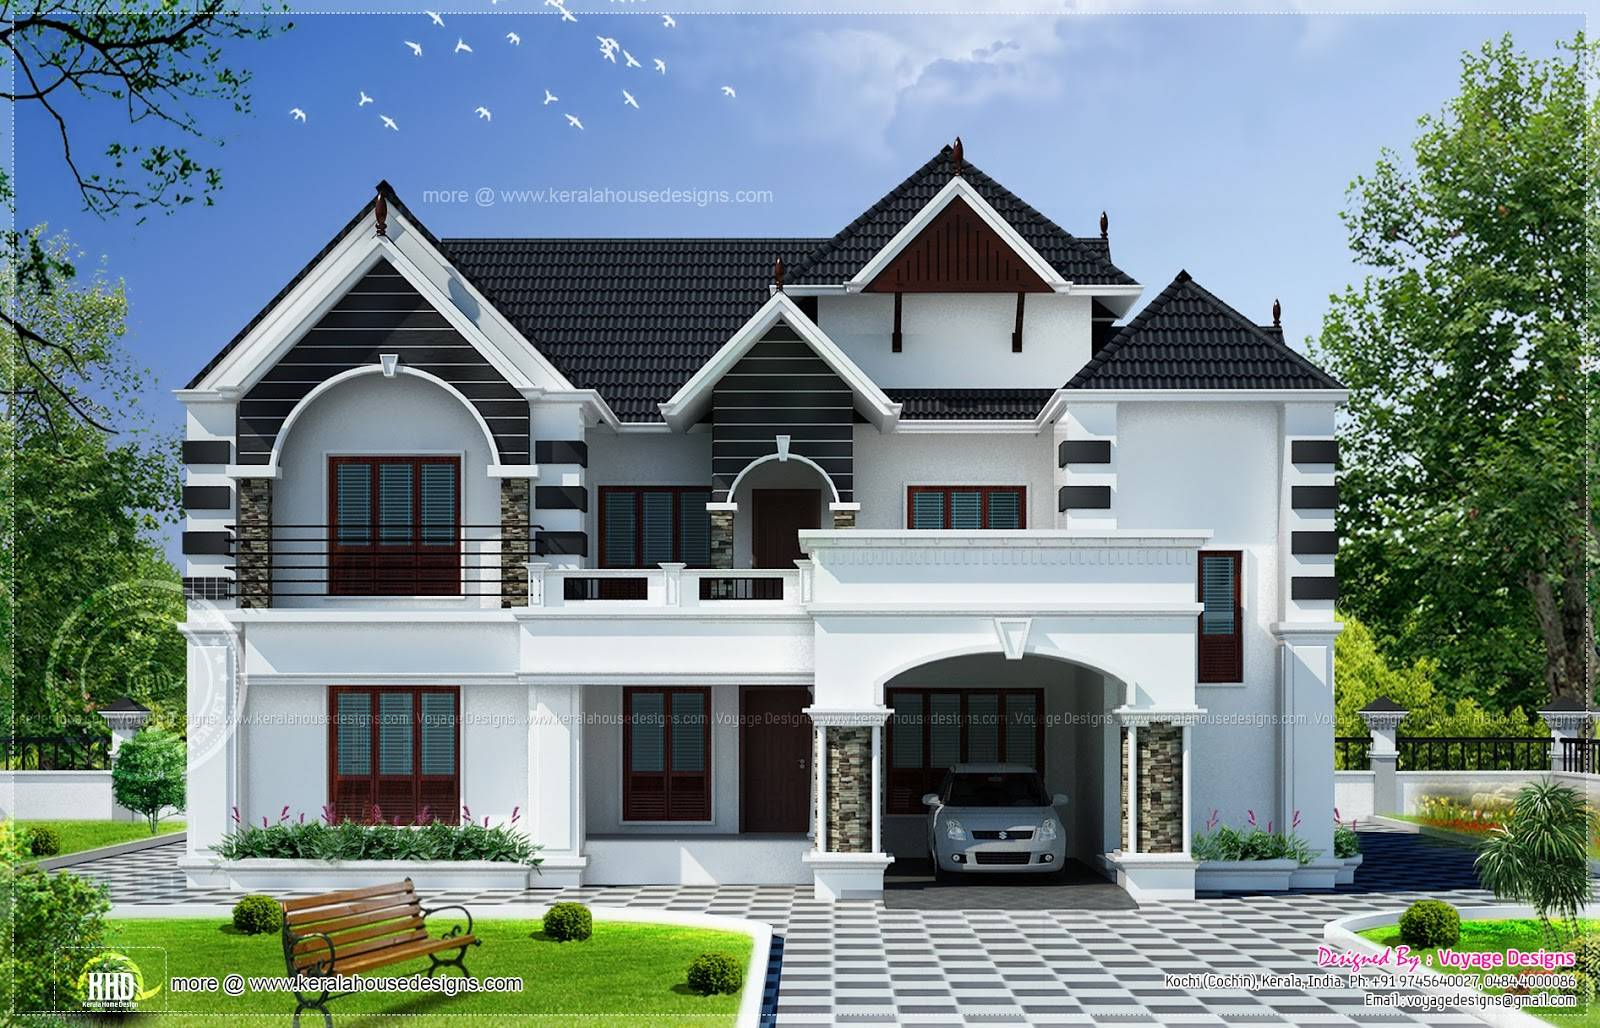 Bedroom Colonial Style House Kerala Home Design Floor Plans House Plans 27635